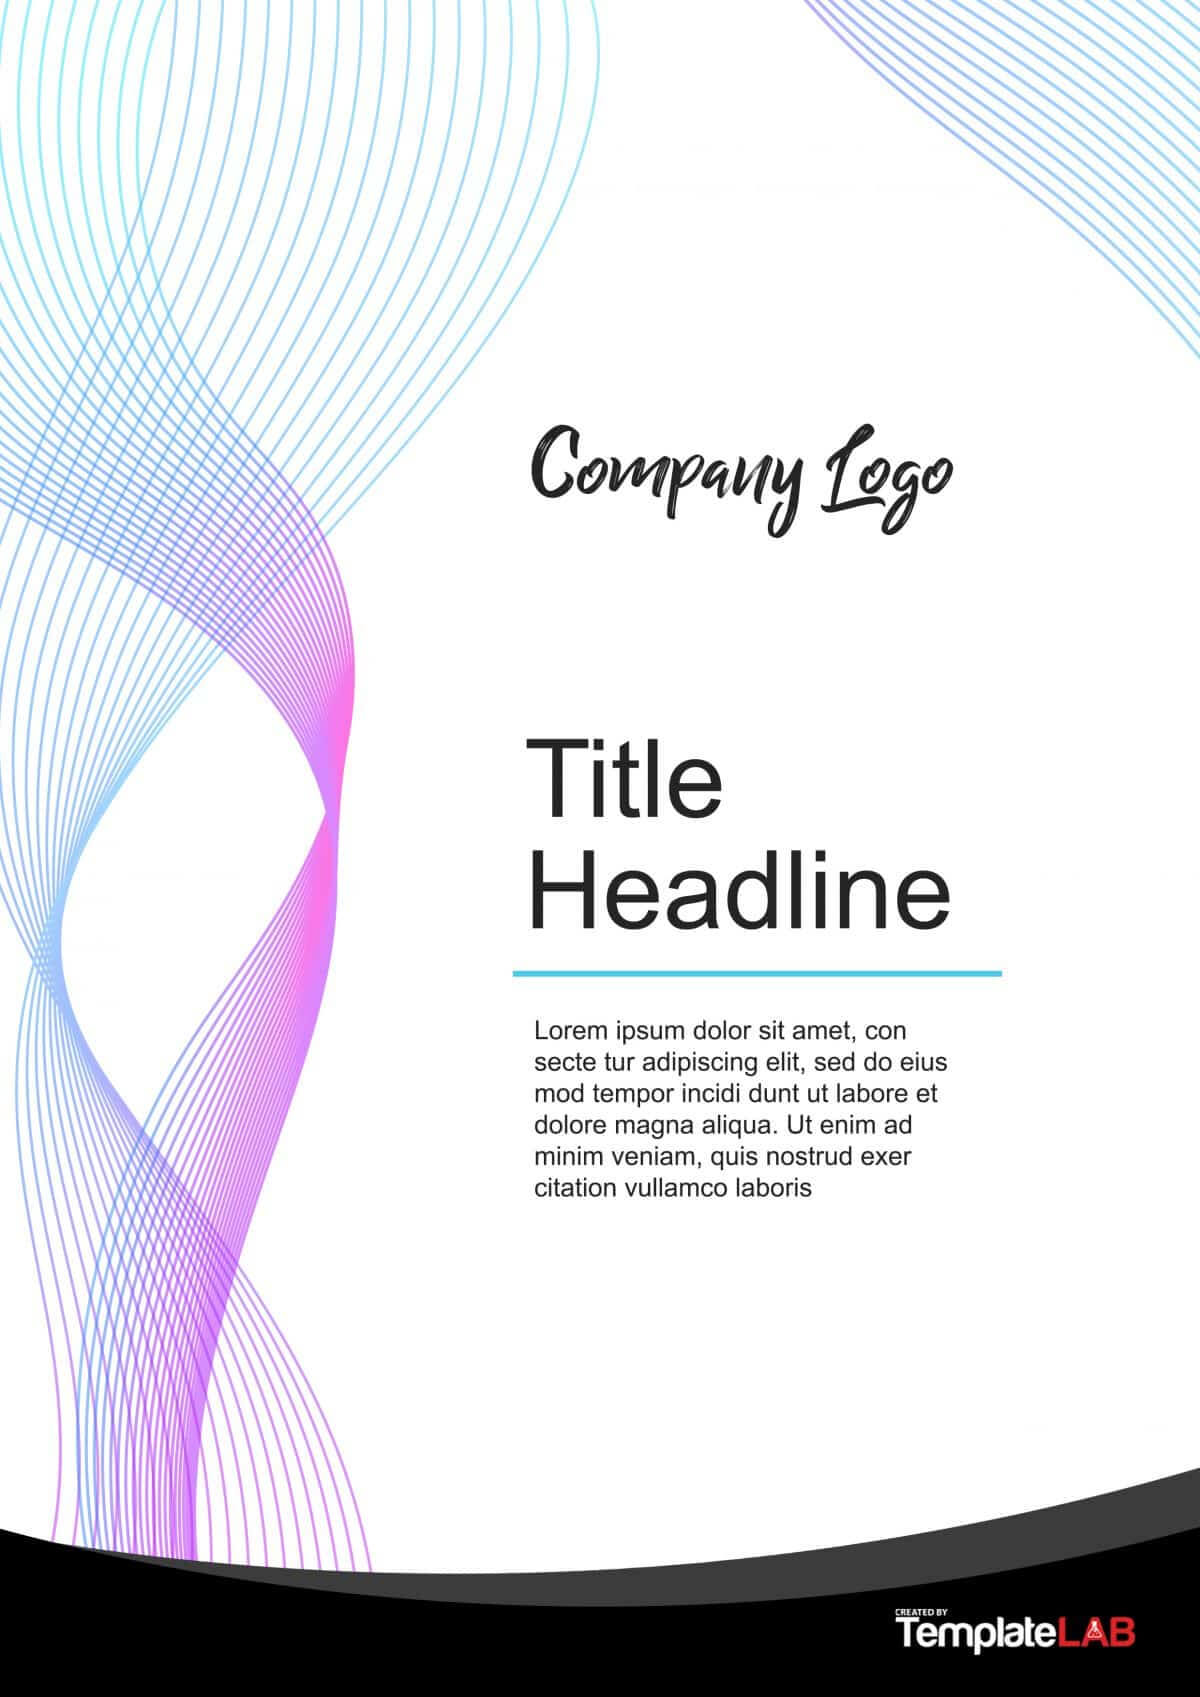 39 Amazing Cover Page Templates (Word + Psd) ᐅ Template Lab For Microsoft Word Cover Page Templates Download